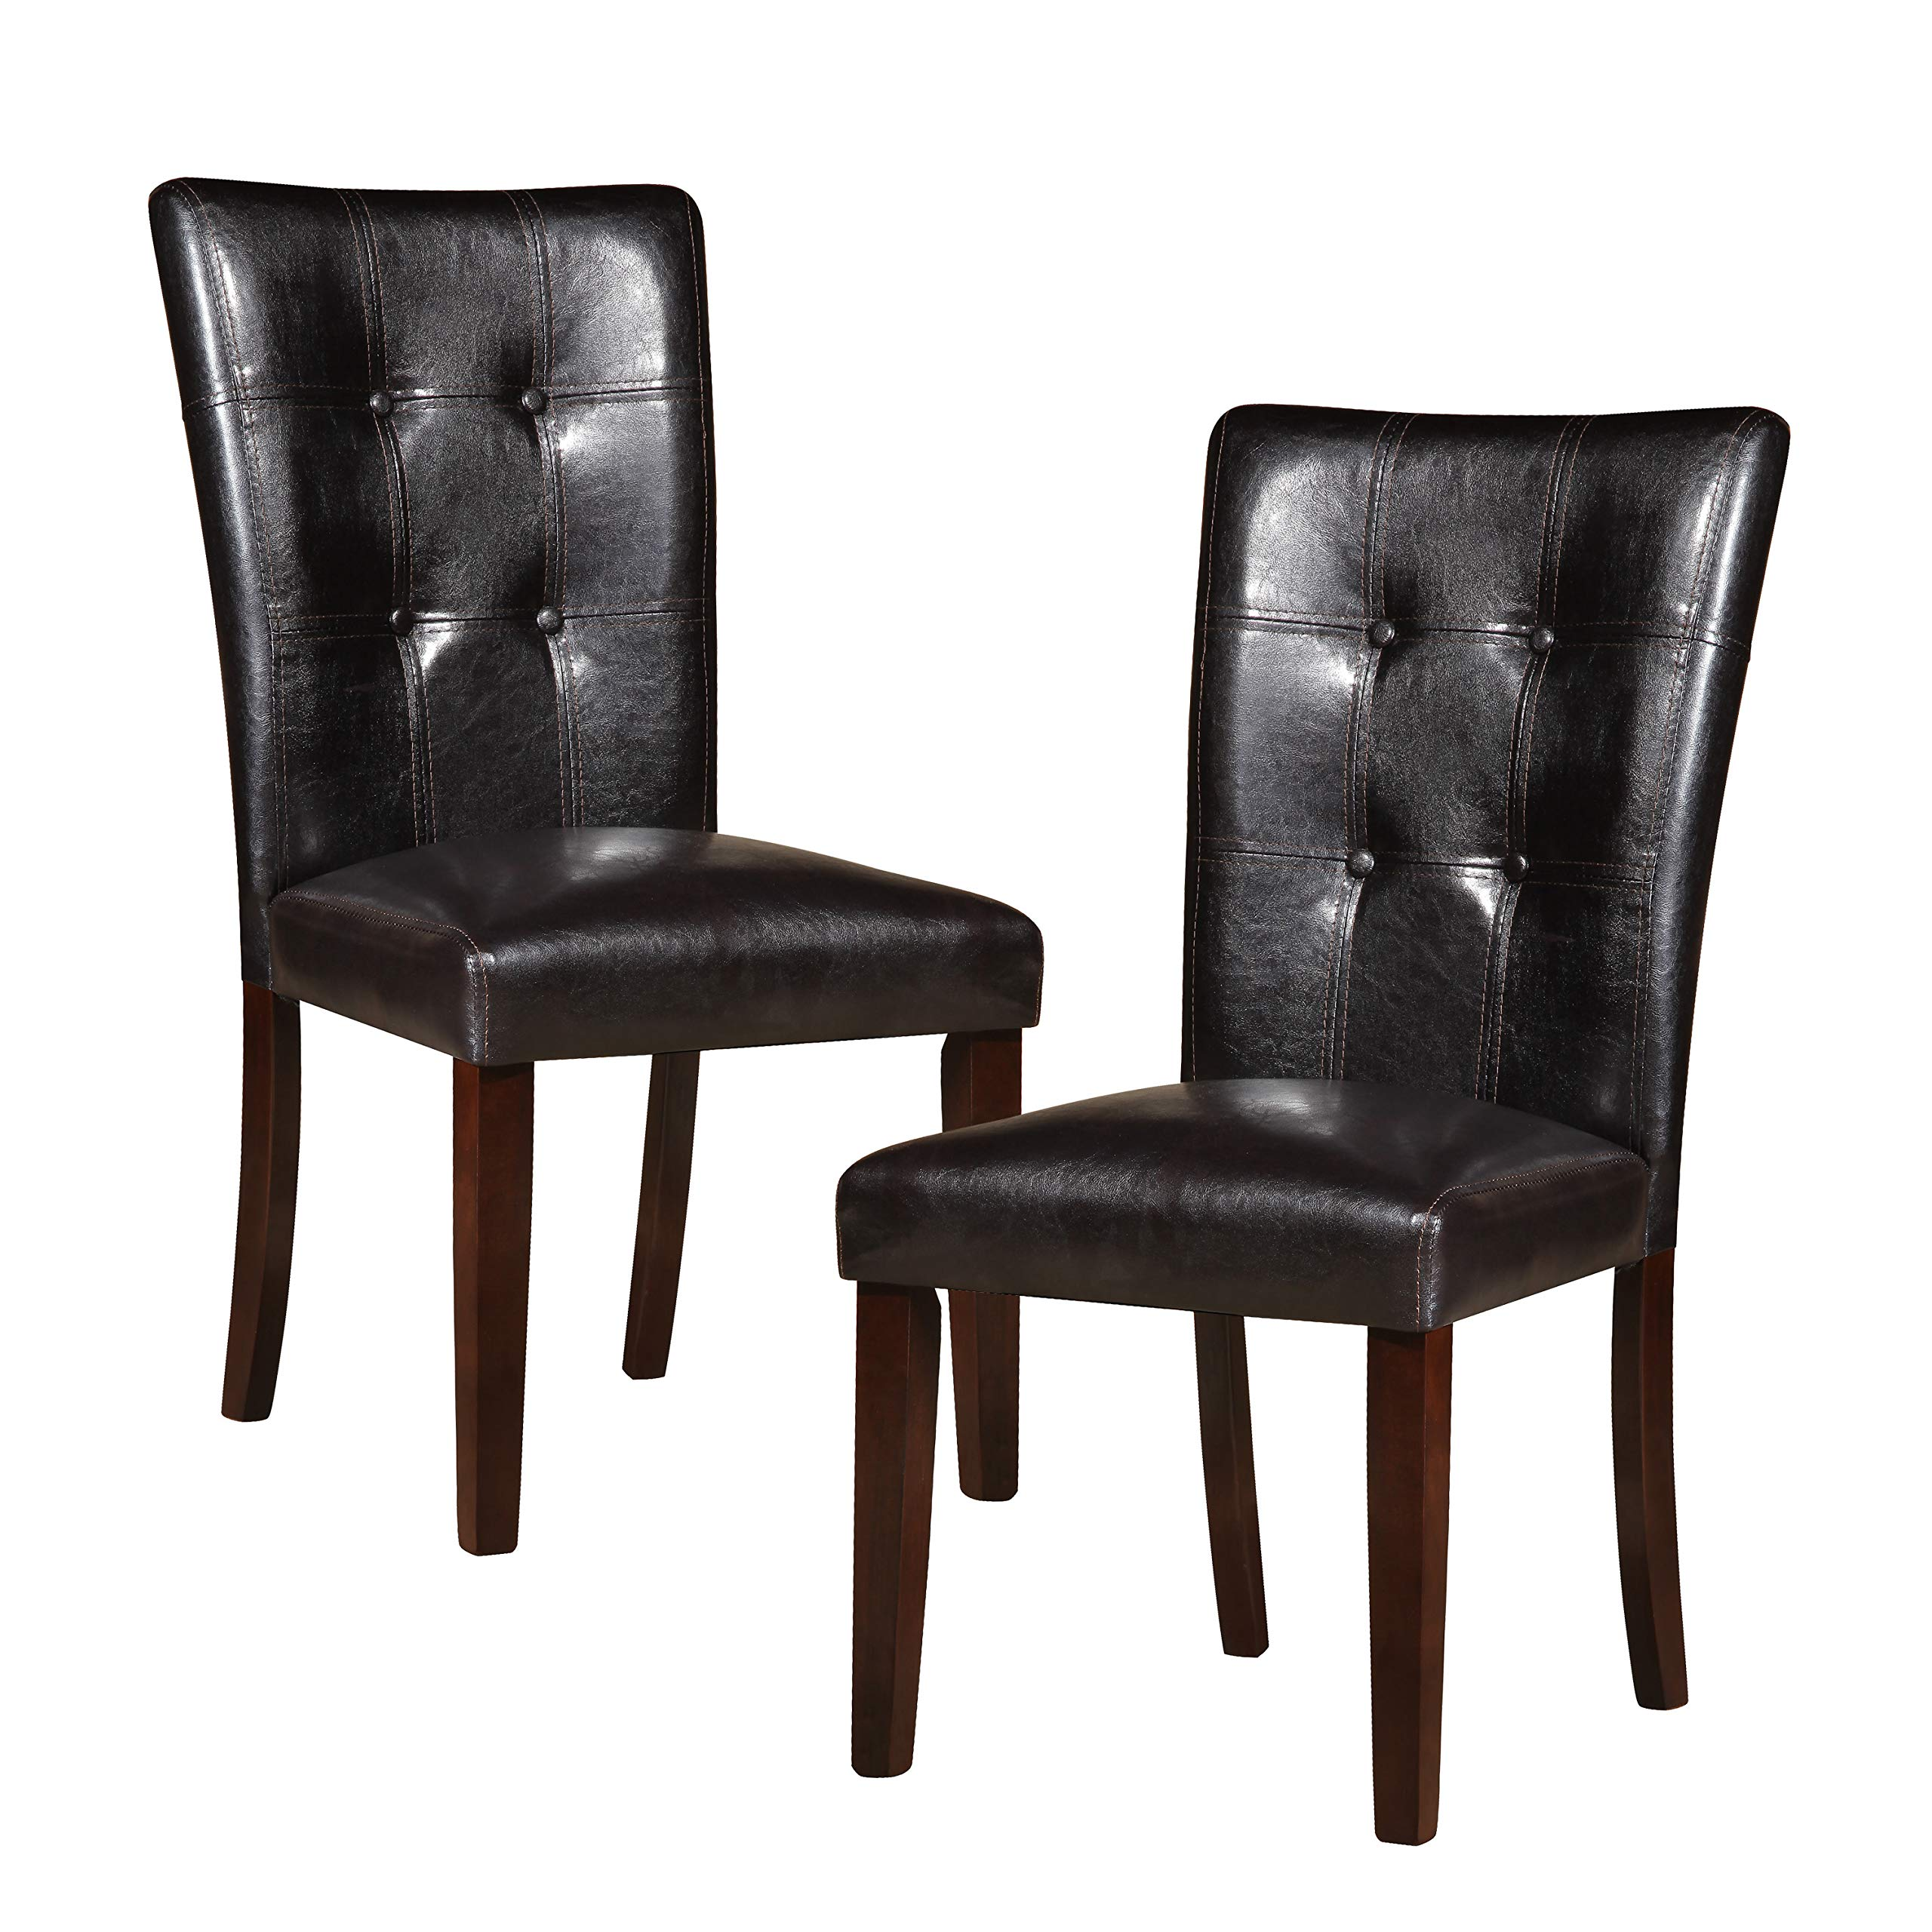 Homelegance Decatur PU Leather Dining Chair (Set of 2), Dark Brown by Homelegance